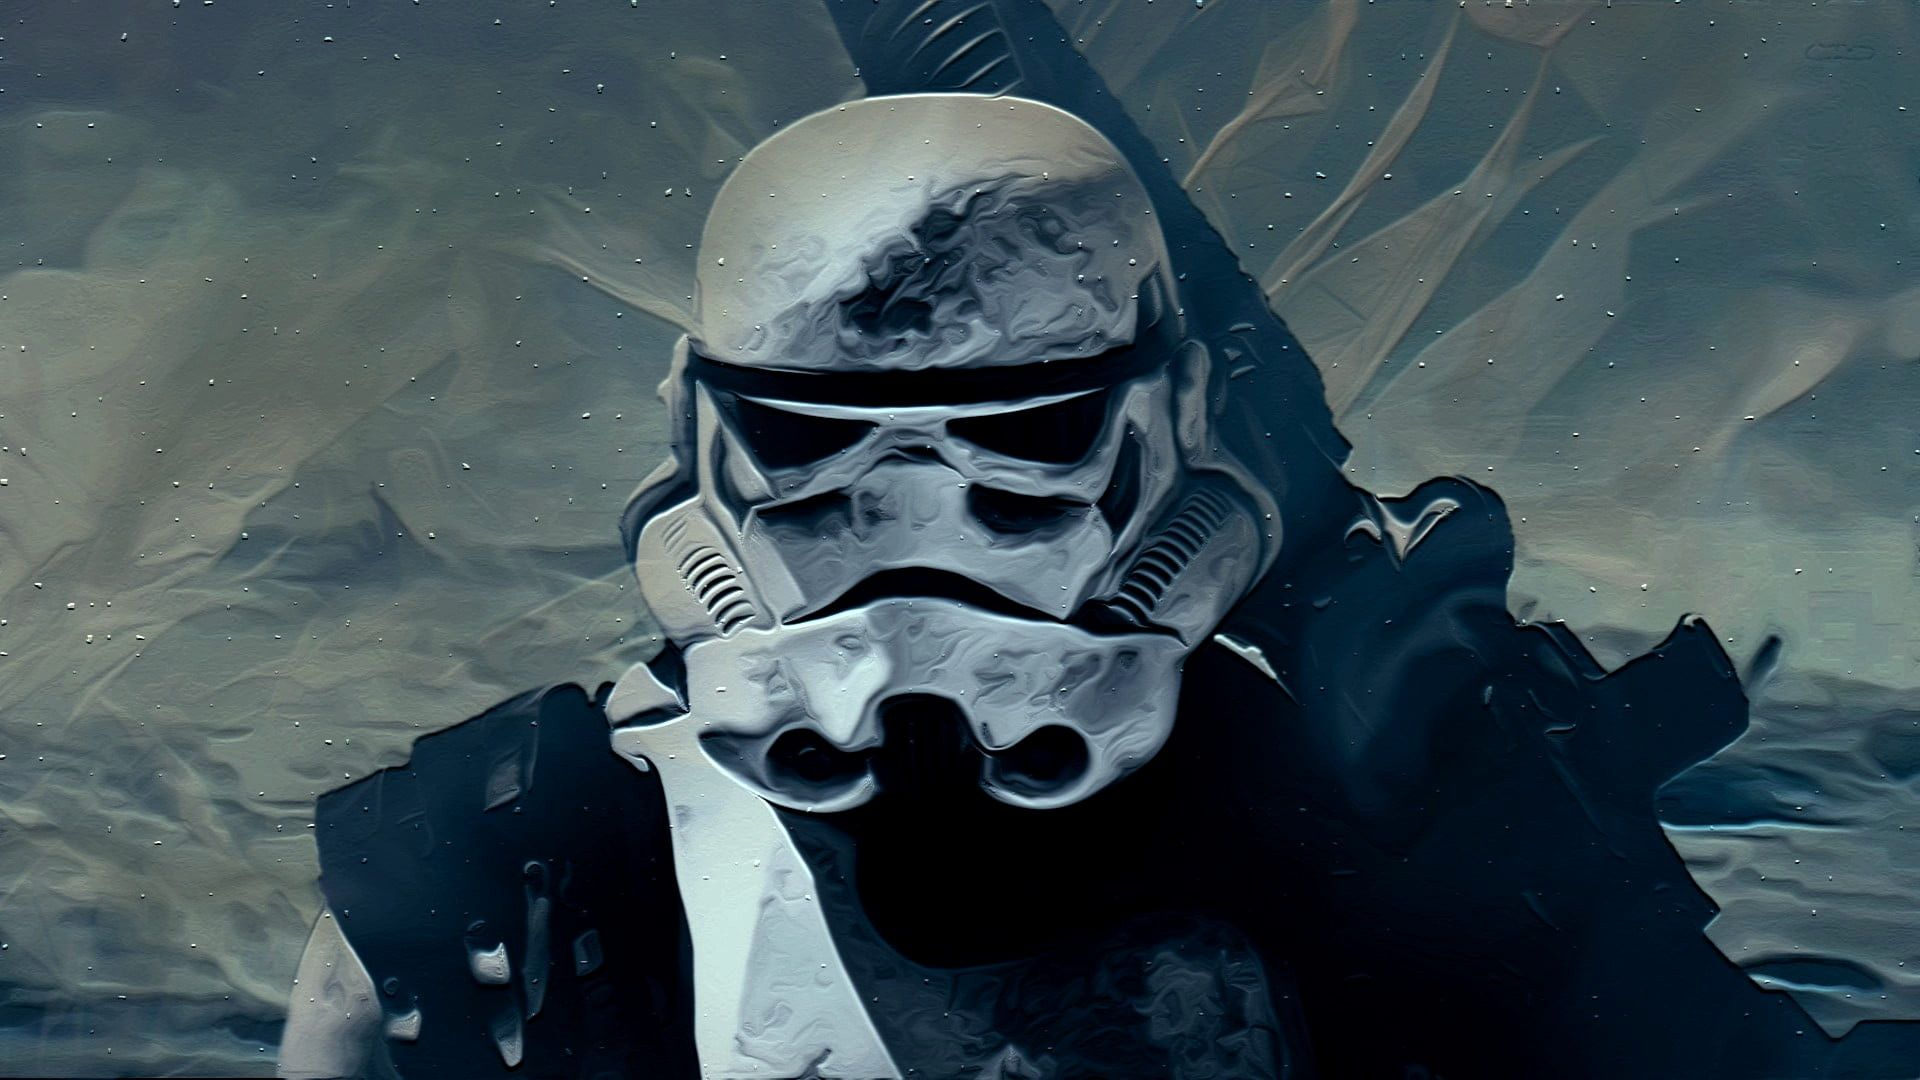 Elegant Storm Trooper Painting Star Wars Stormtrooper Hd Star